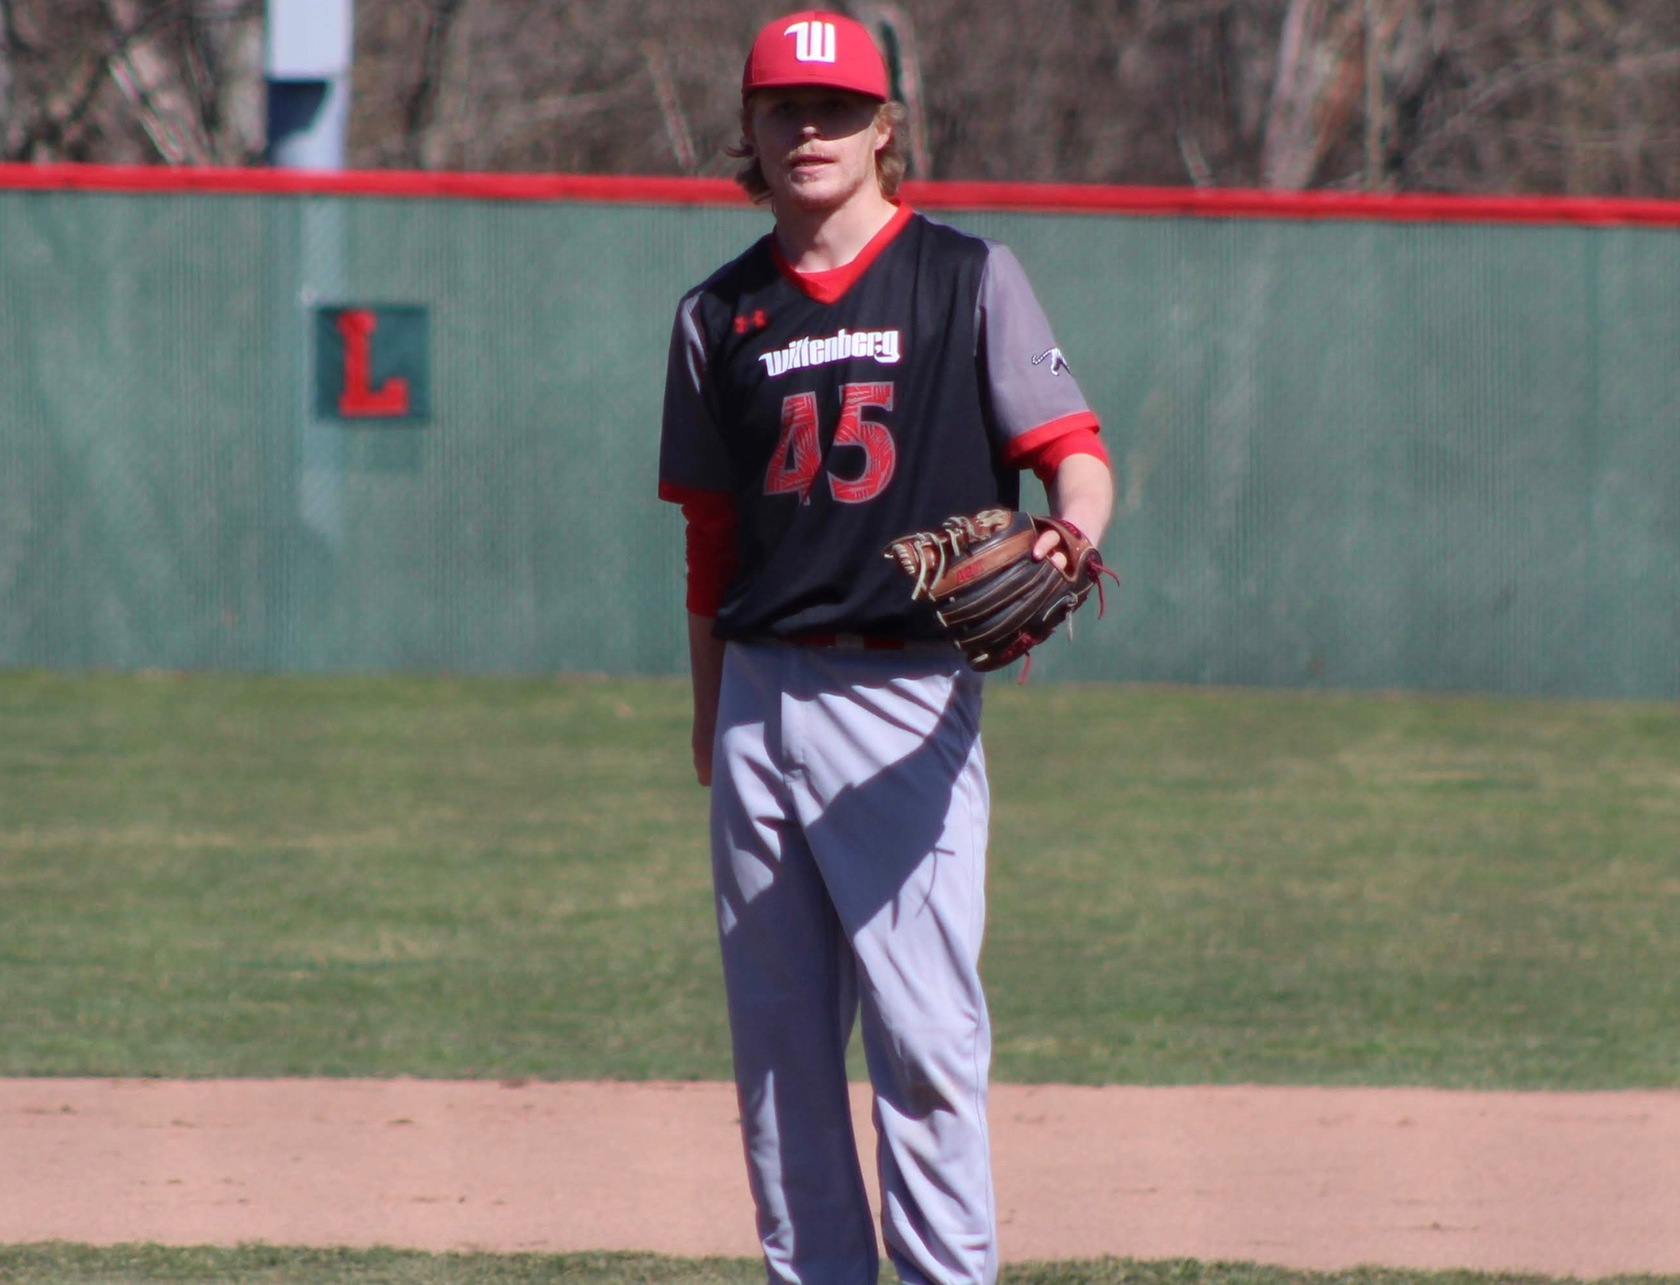 For the second time this week, Tanner Griggs tossed an absolute gem to lead the Tigers in another NCAC split, this time at Allegheny